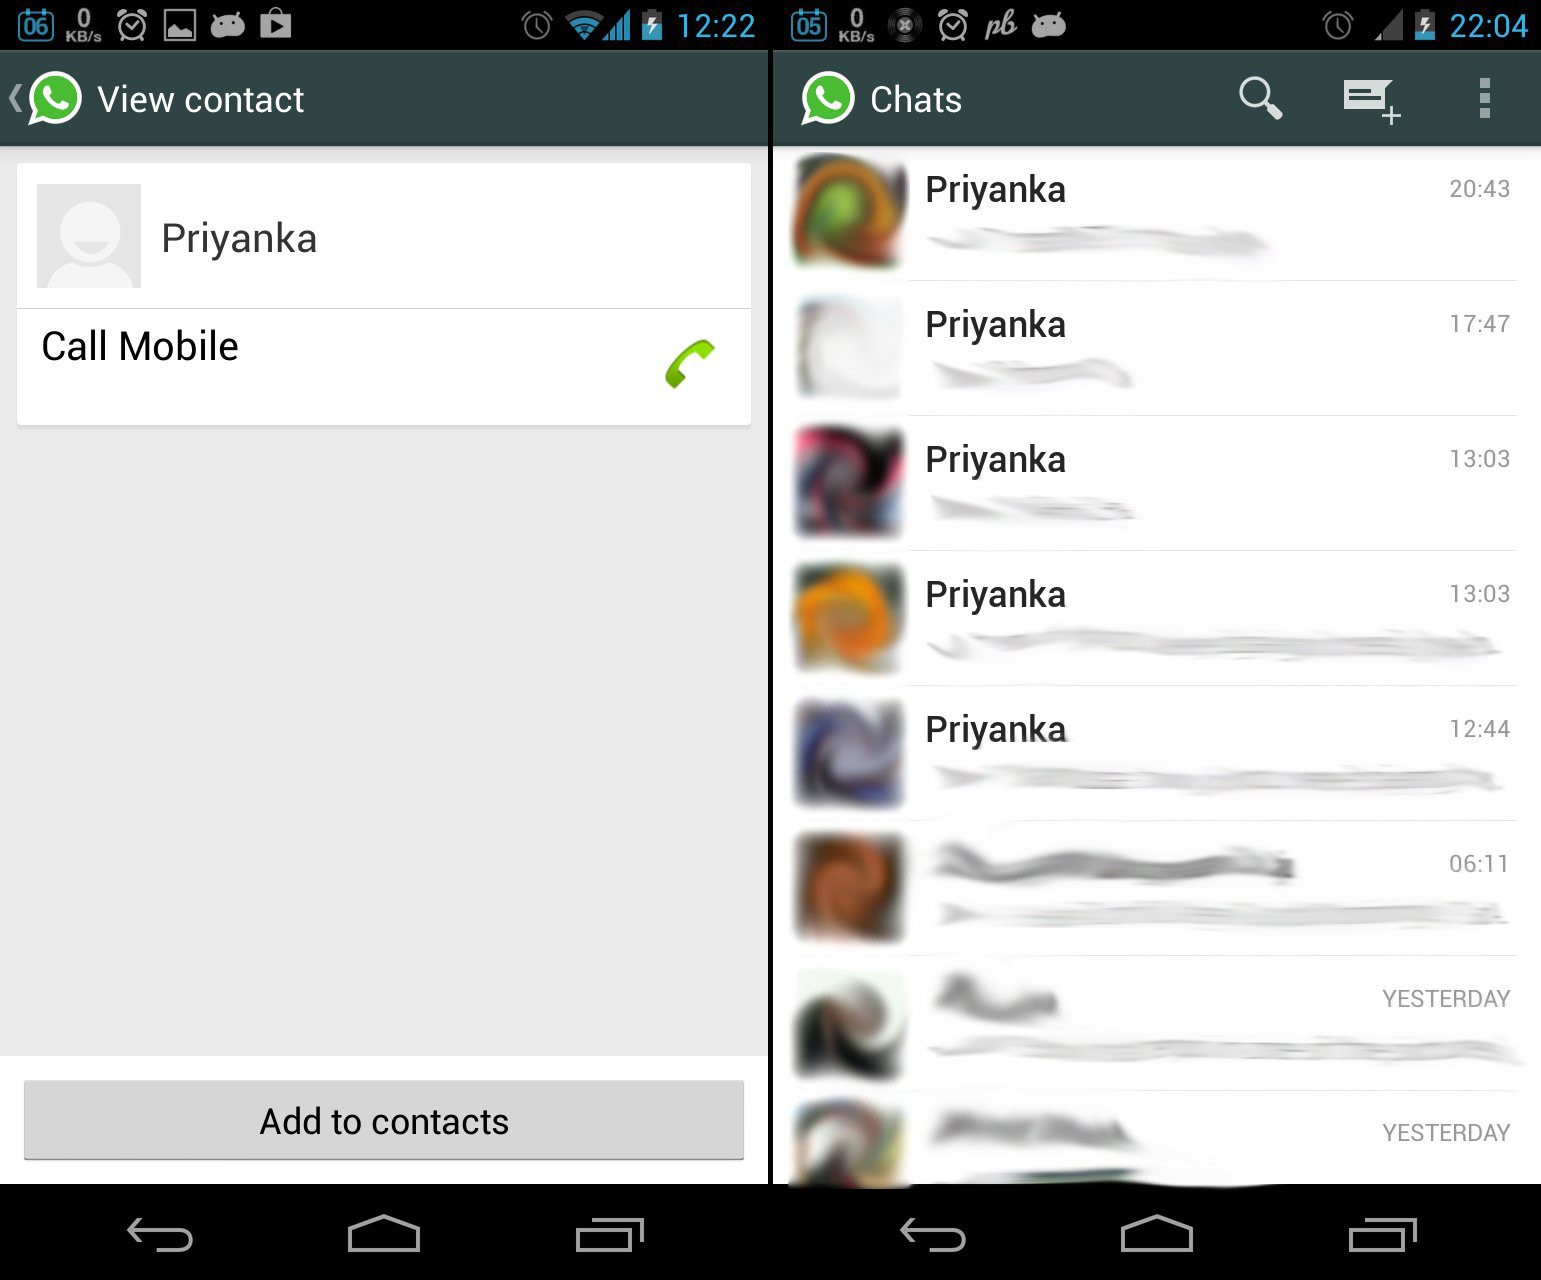 Android Malware Priyanka Spreading Rapidly Through